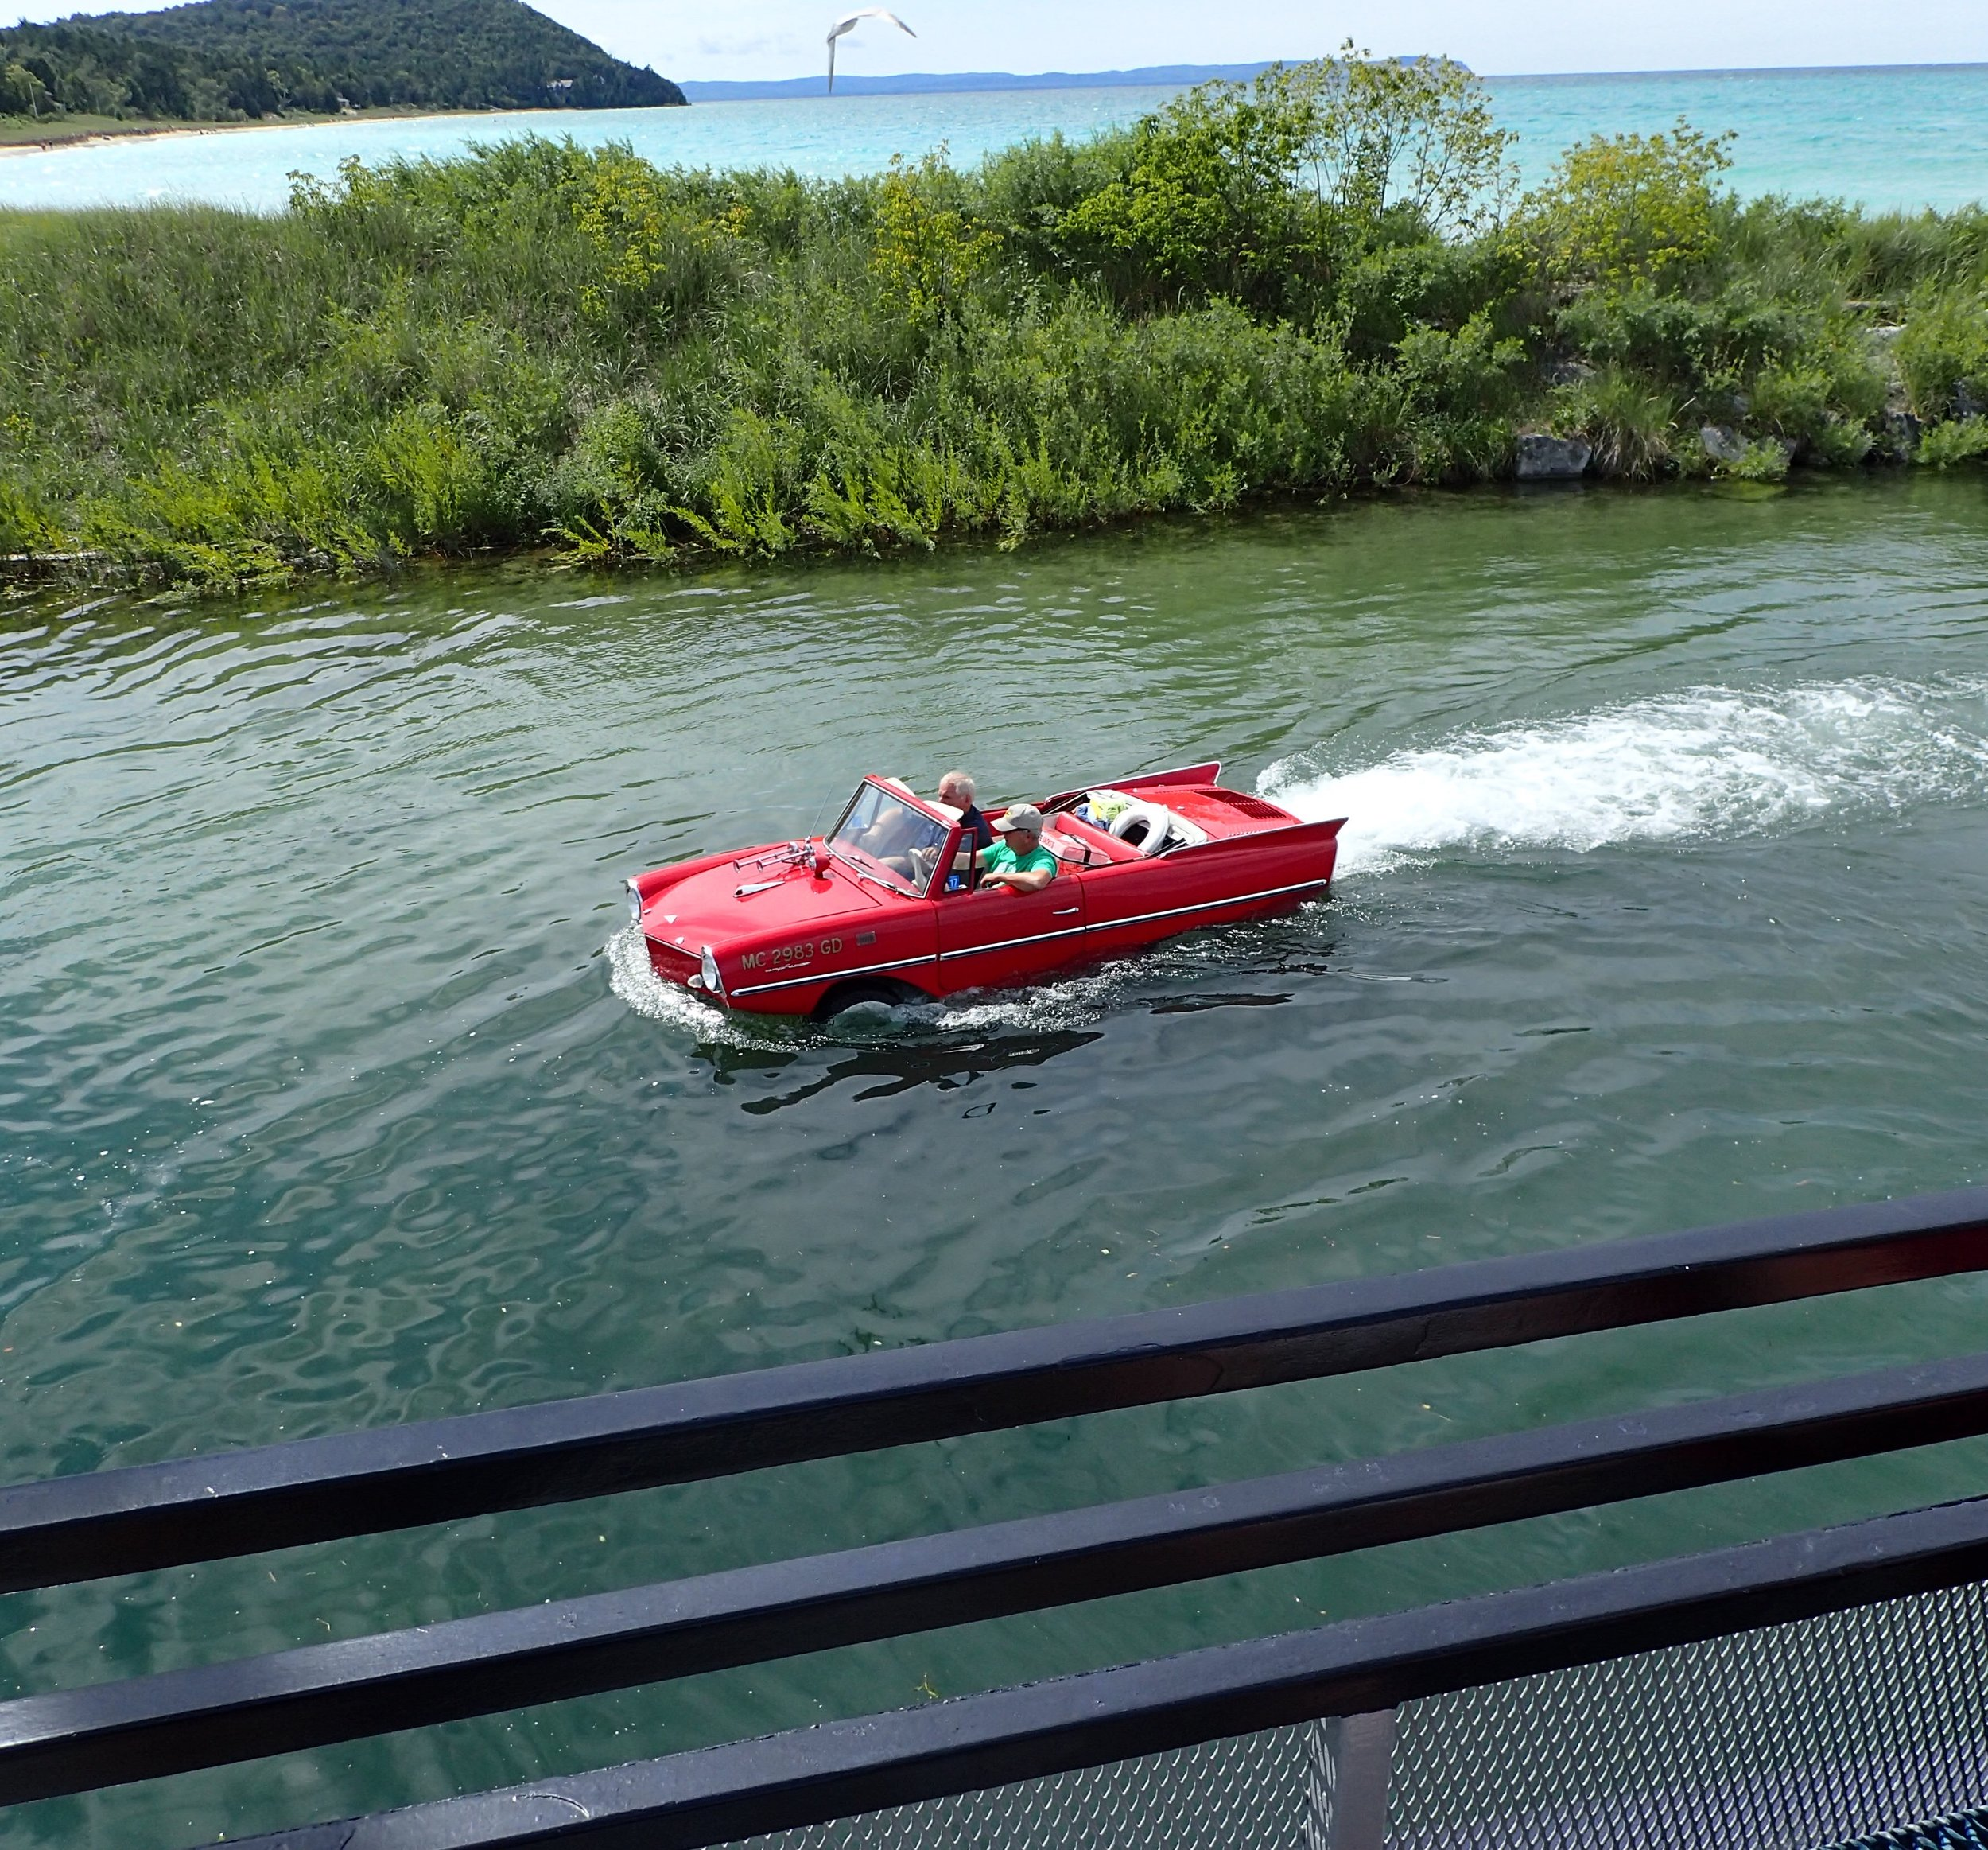 The Amphicar cruising by our docked ferry prior to our departure.